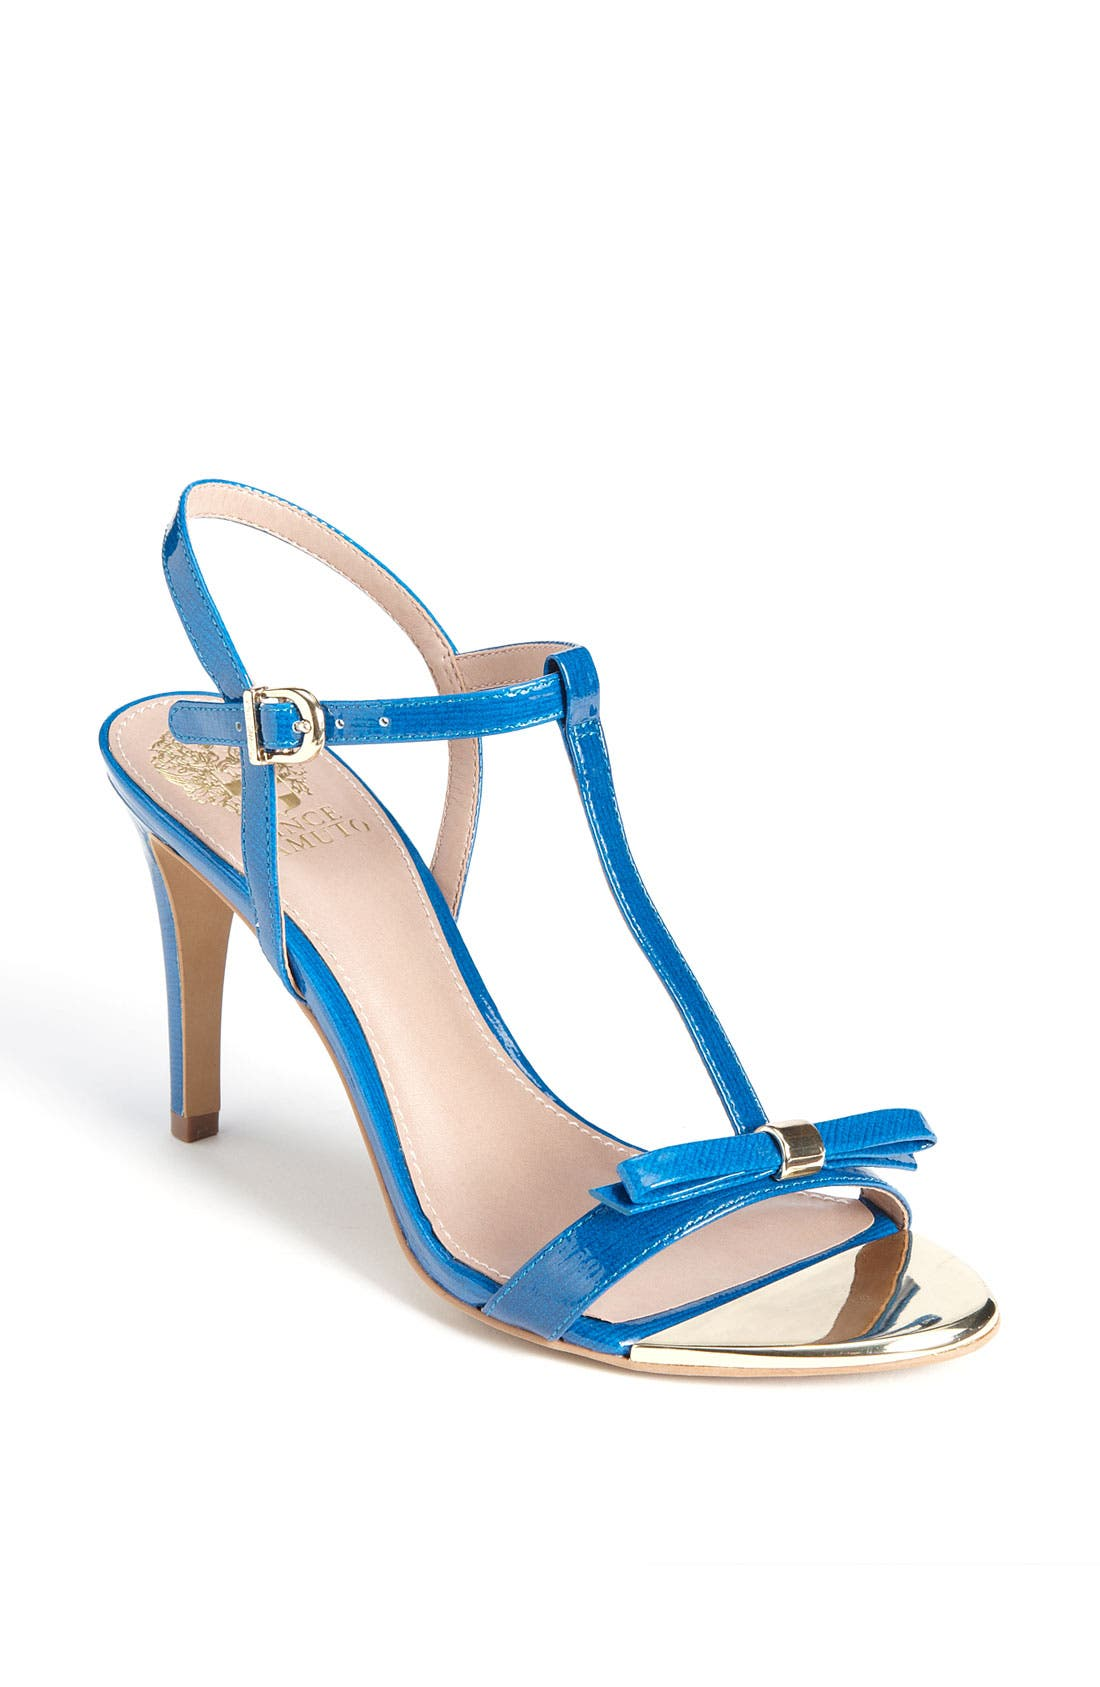 Alternate Image 1 Selected - Vince Camuto 'Spicer' Sandal